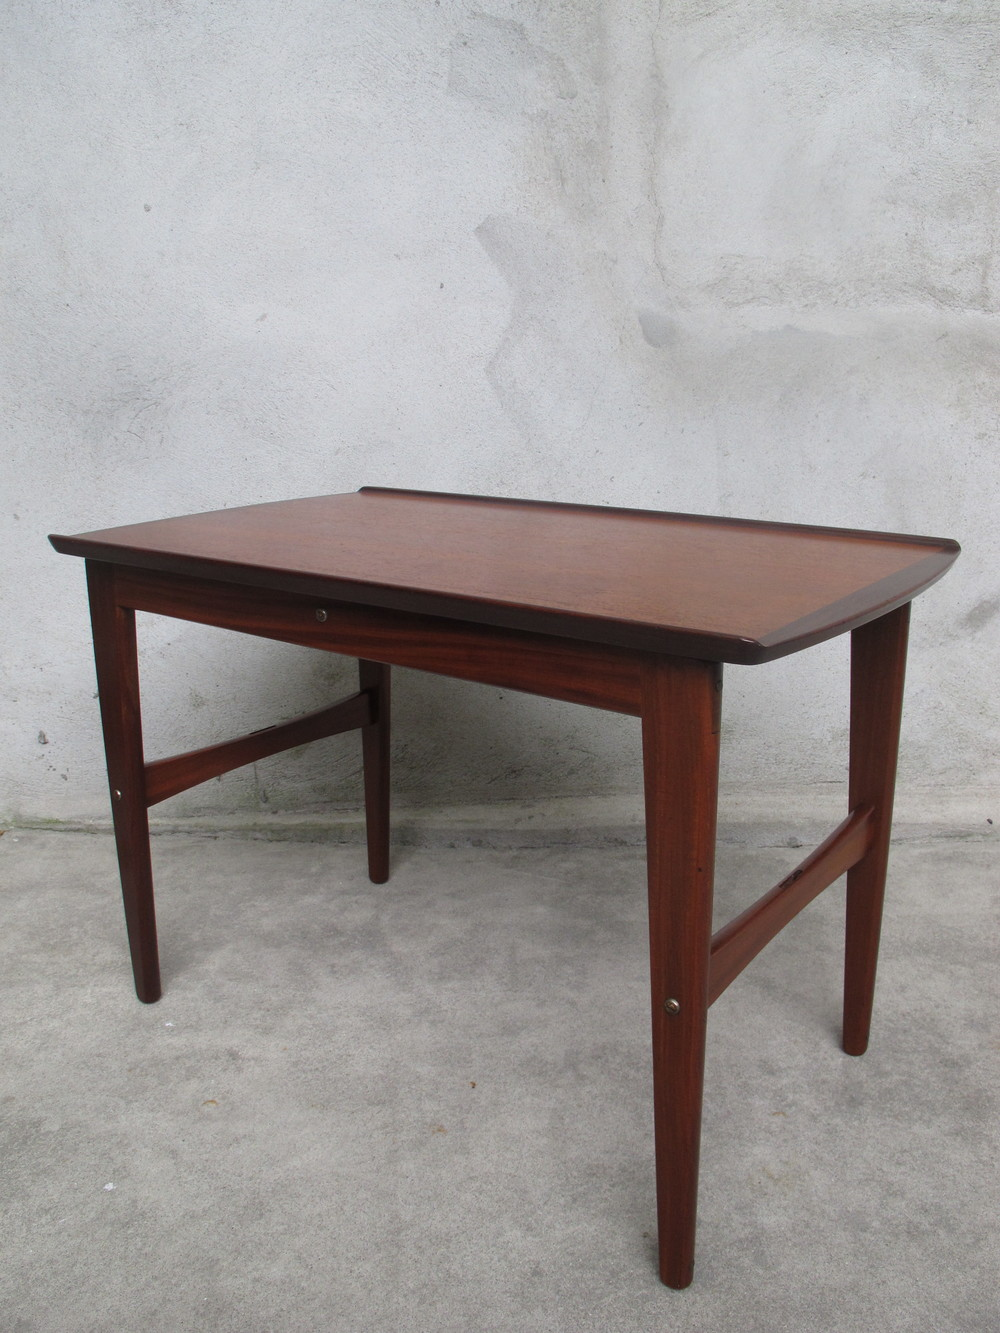 DANISH TEAK END TABLE AFTER GRETE JALK